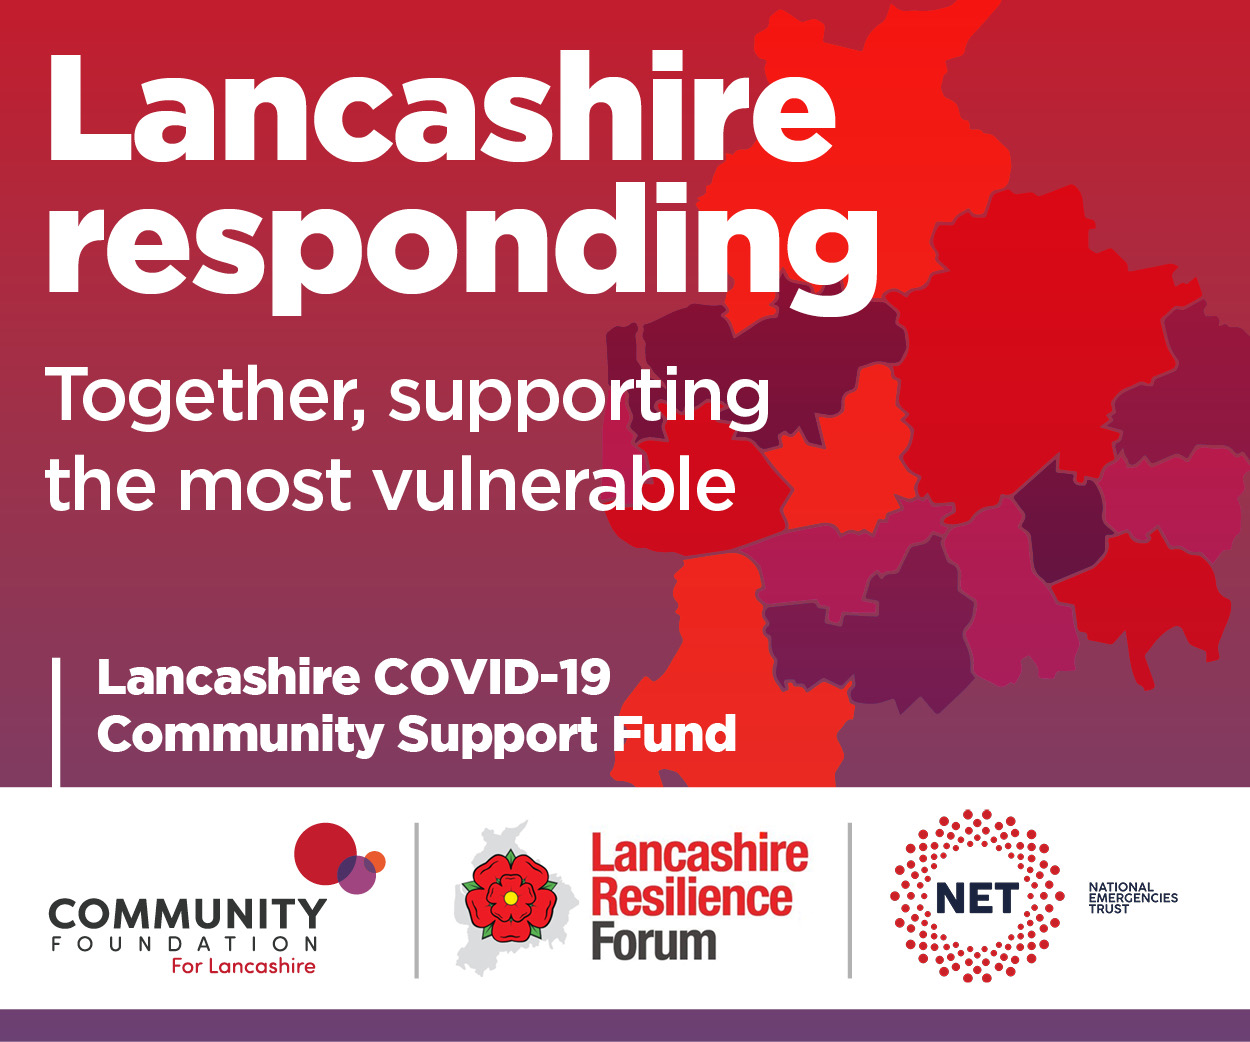 Lancashire responding. Together, supporting the most vulnerable.